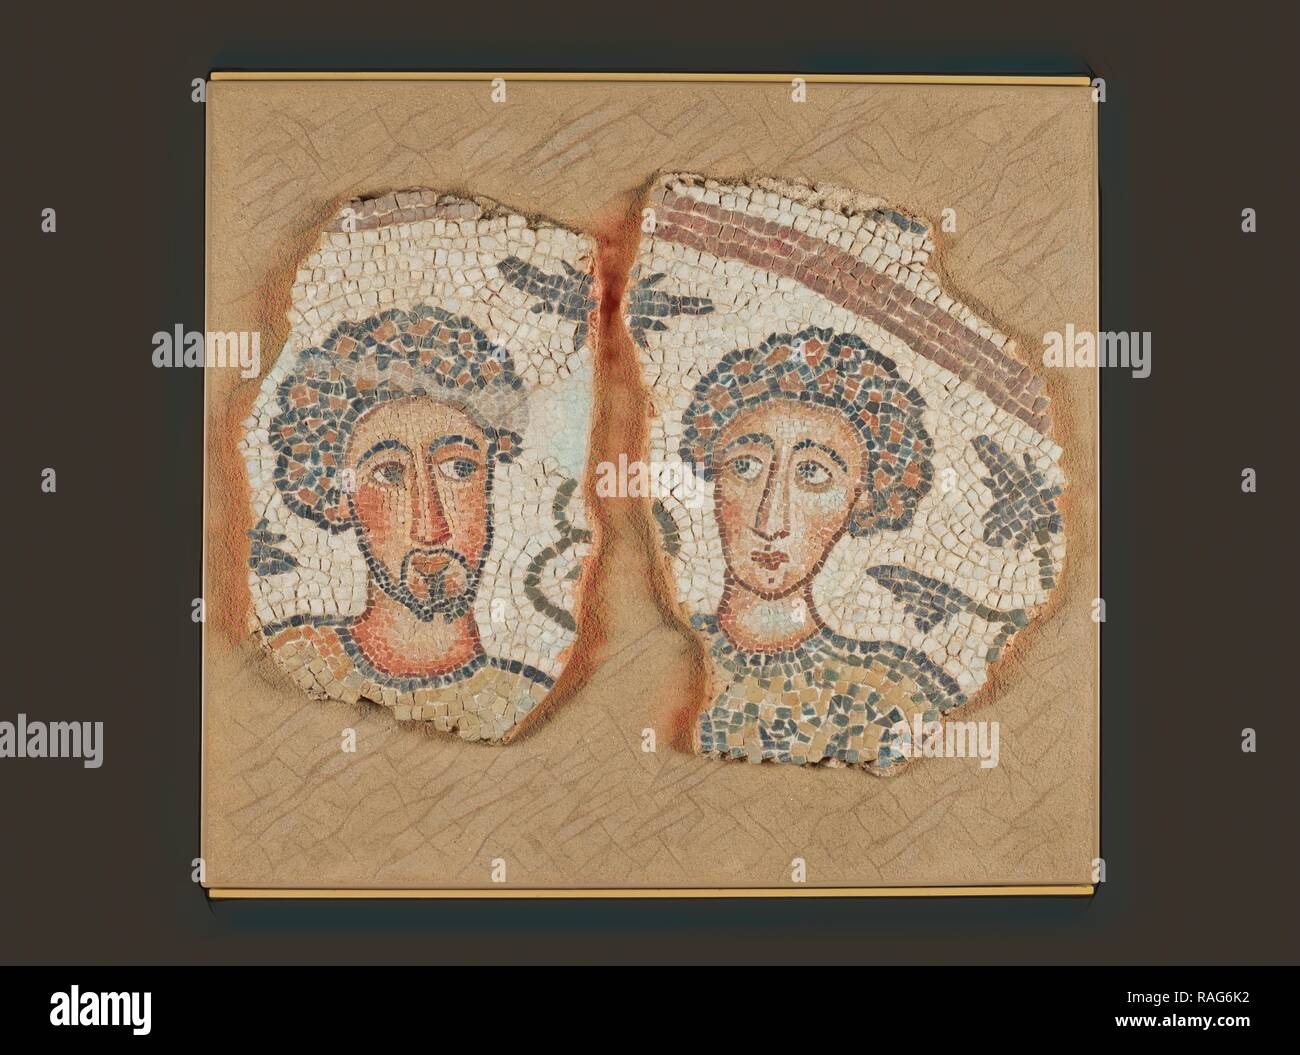 Mosaic Fragments (2), Eastern Mediterranean (?), 5th century, Stone and concrete, 48 × 68 cm (18 7,8 × 26 3,4 in reimagined - Stock Image